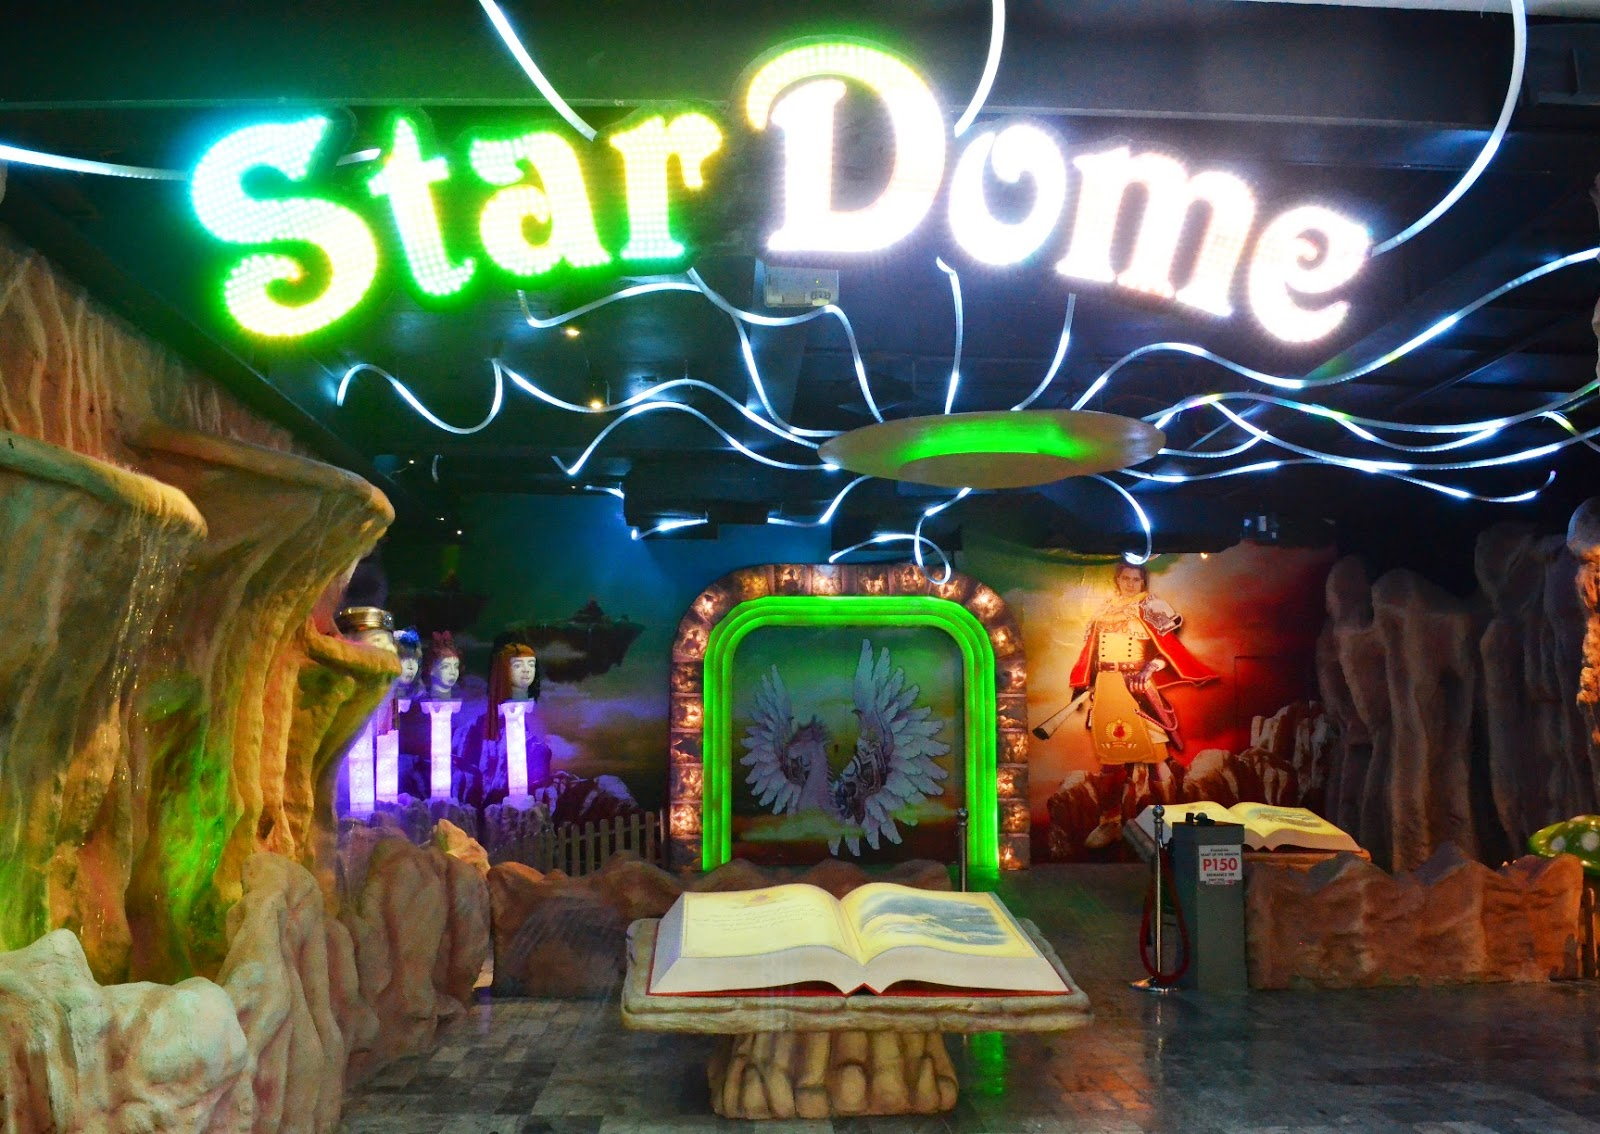 Star City Events